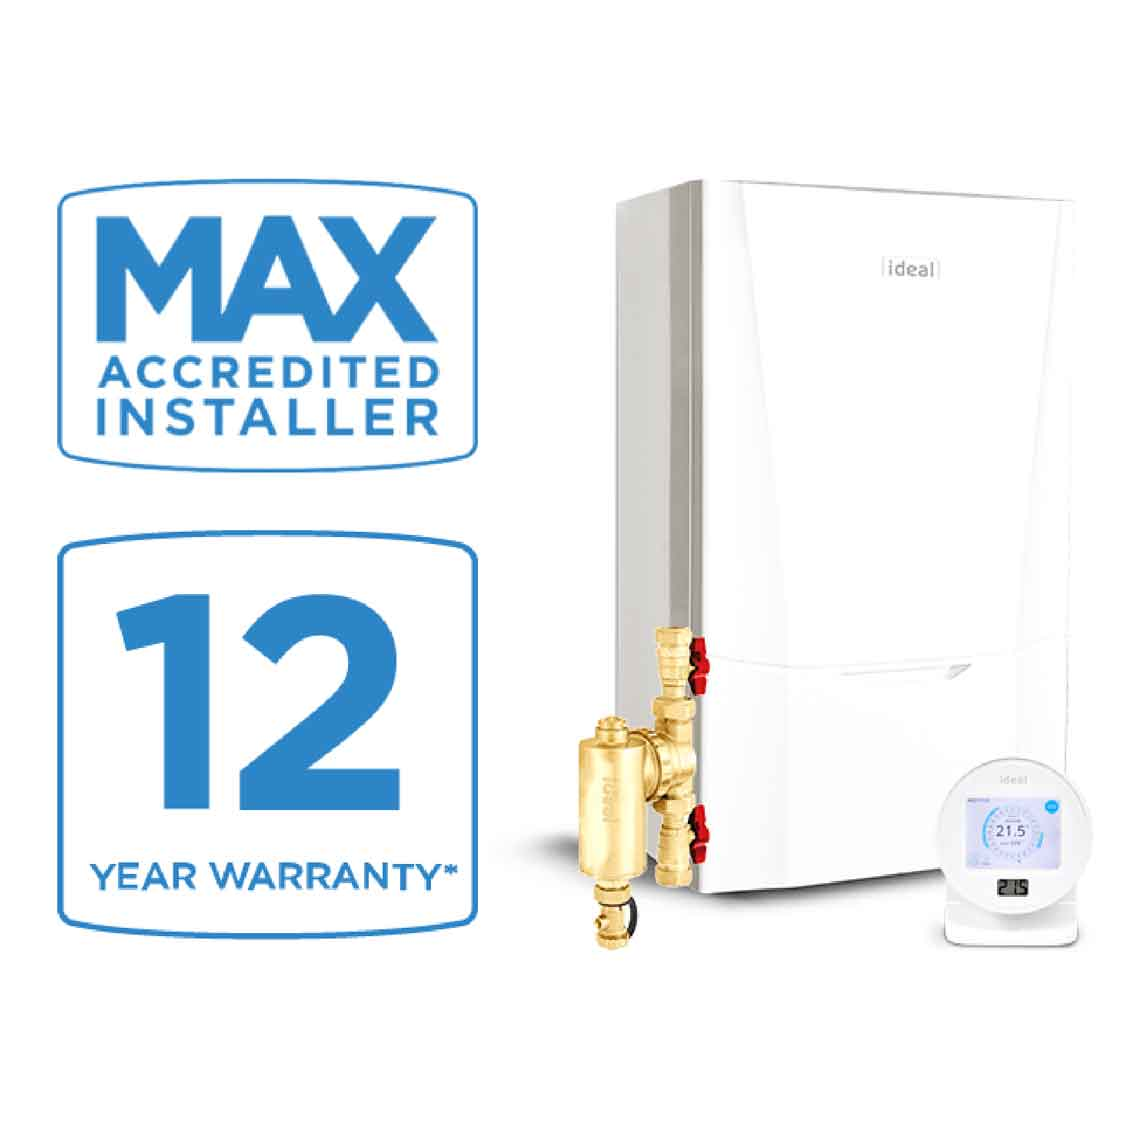 boiler service essex maintenance leigh on sea products